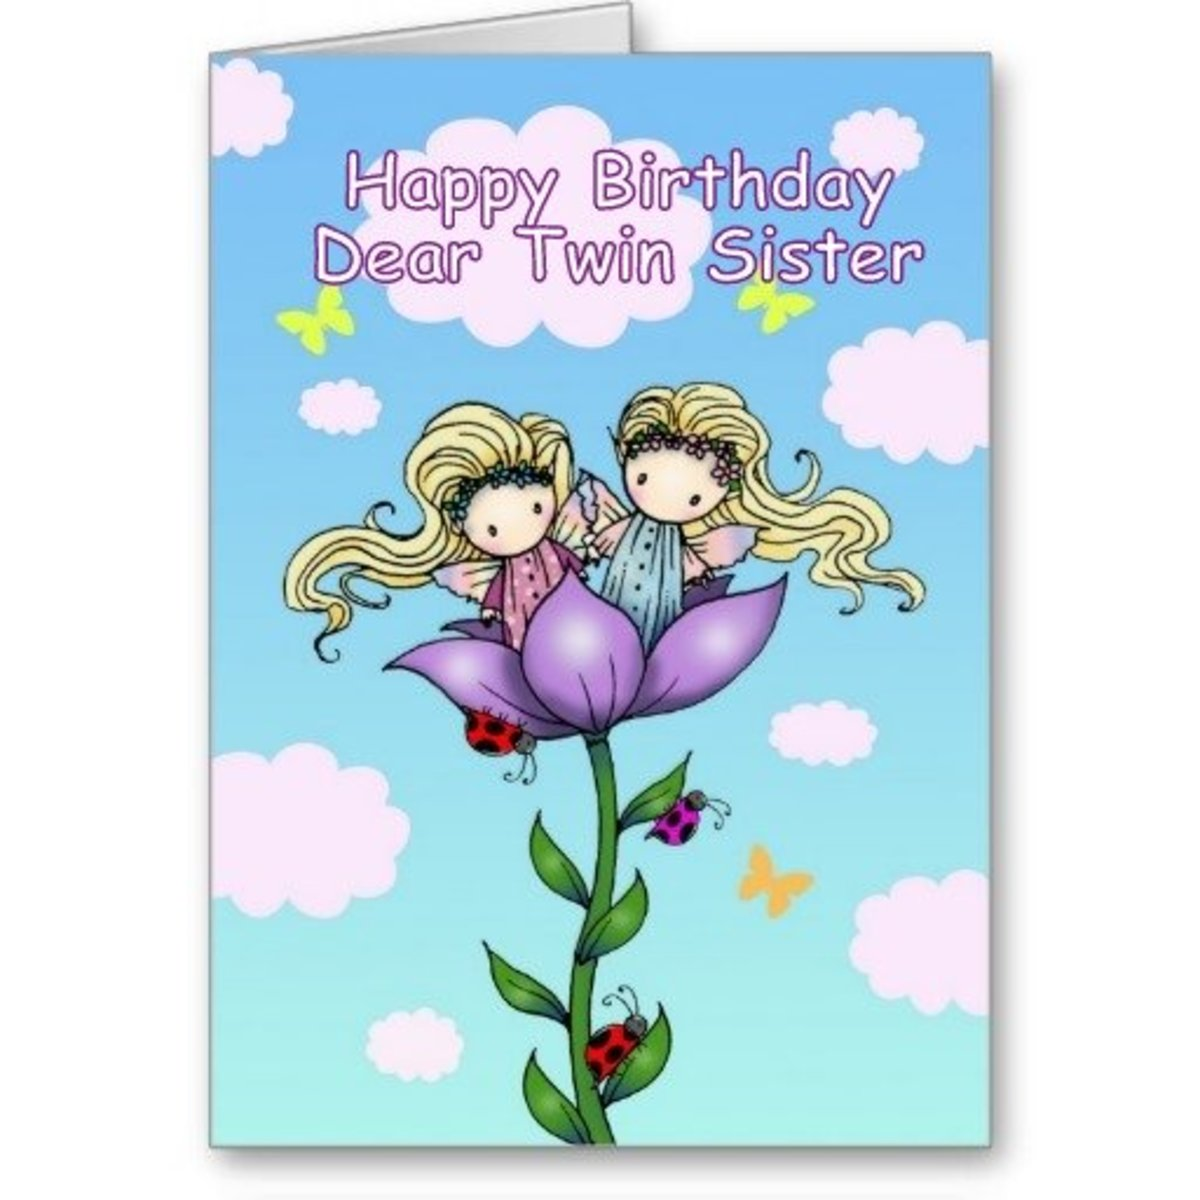 Funny Birthday Quotes For Twin Sister Twin sister funny quotes – Twin Sister Birthday Card